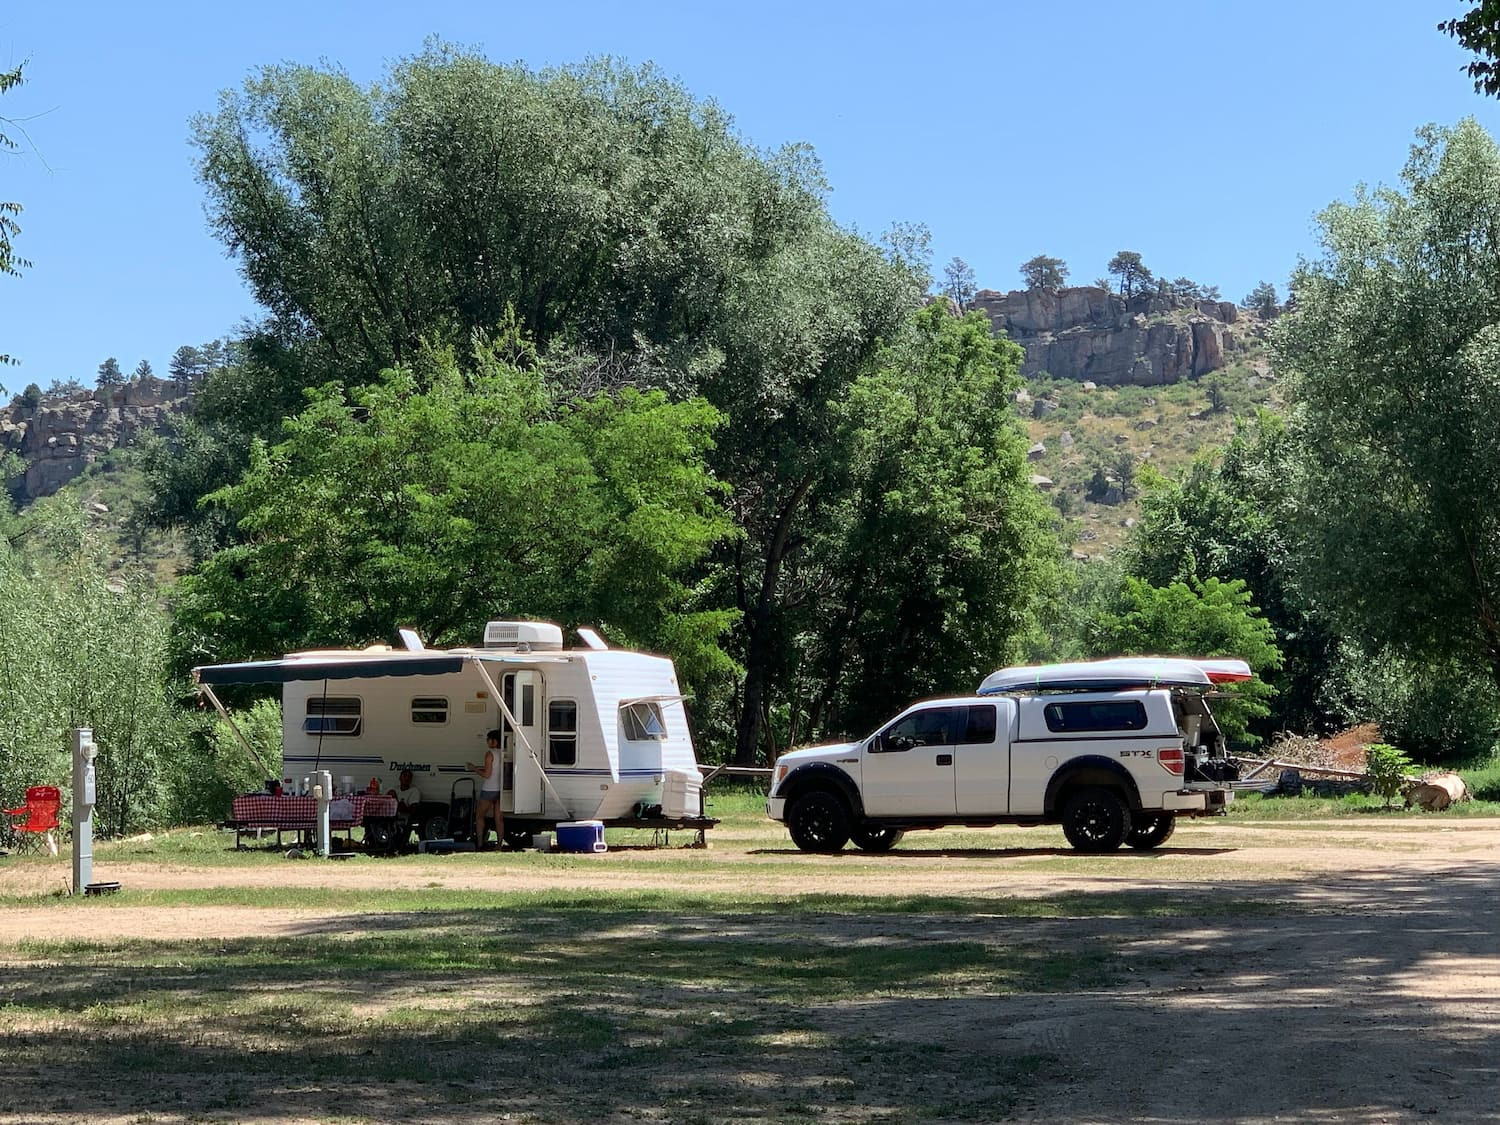 Truck and Rv parked at forested campsite near Fort Collins.